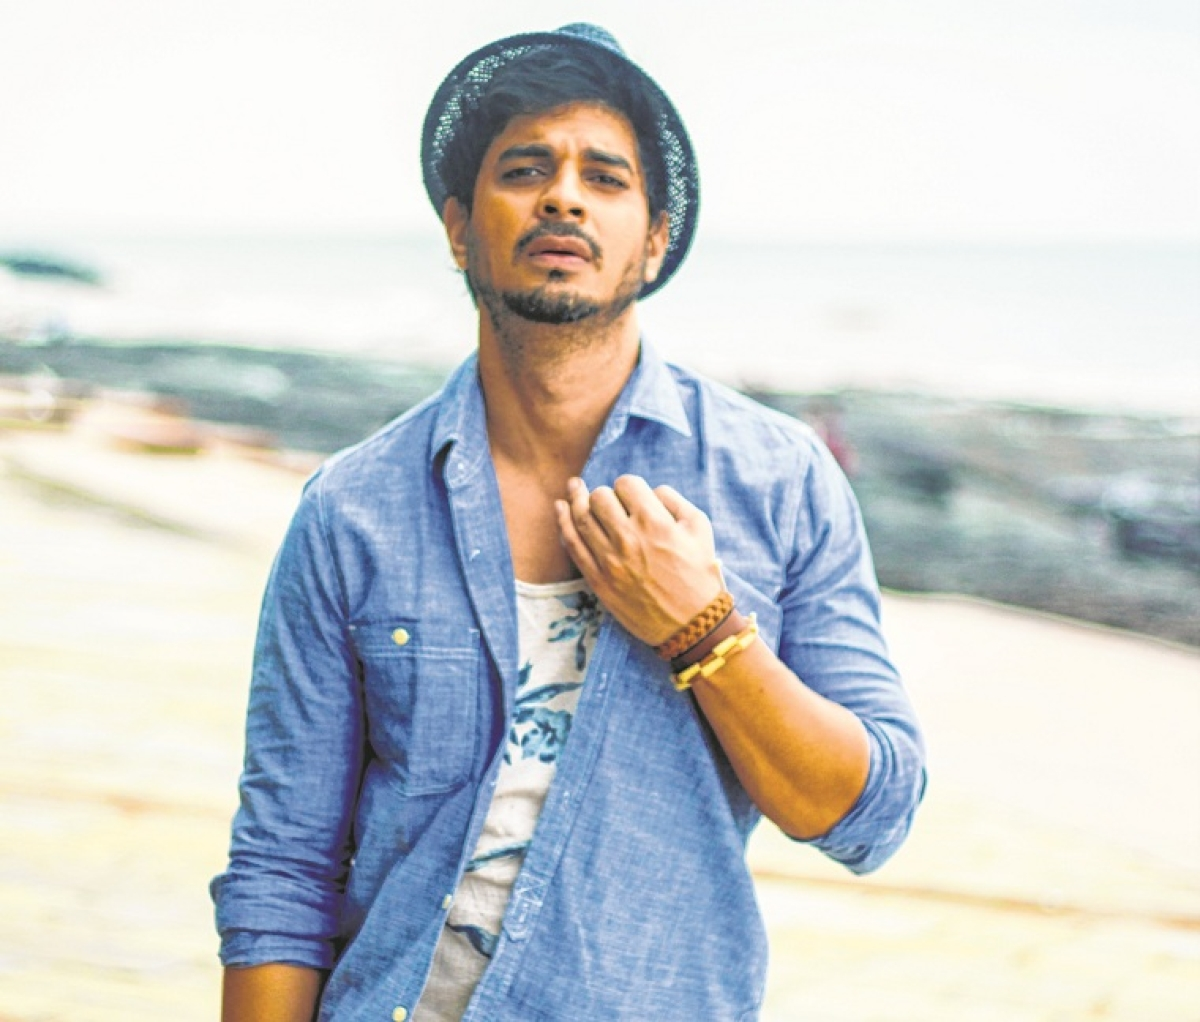 From Haruki Murakami to Eckhart Tolle: Actor Tahir Raj Bhasin gives a glimpse into his reading habits